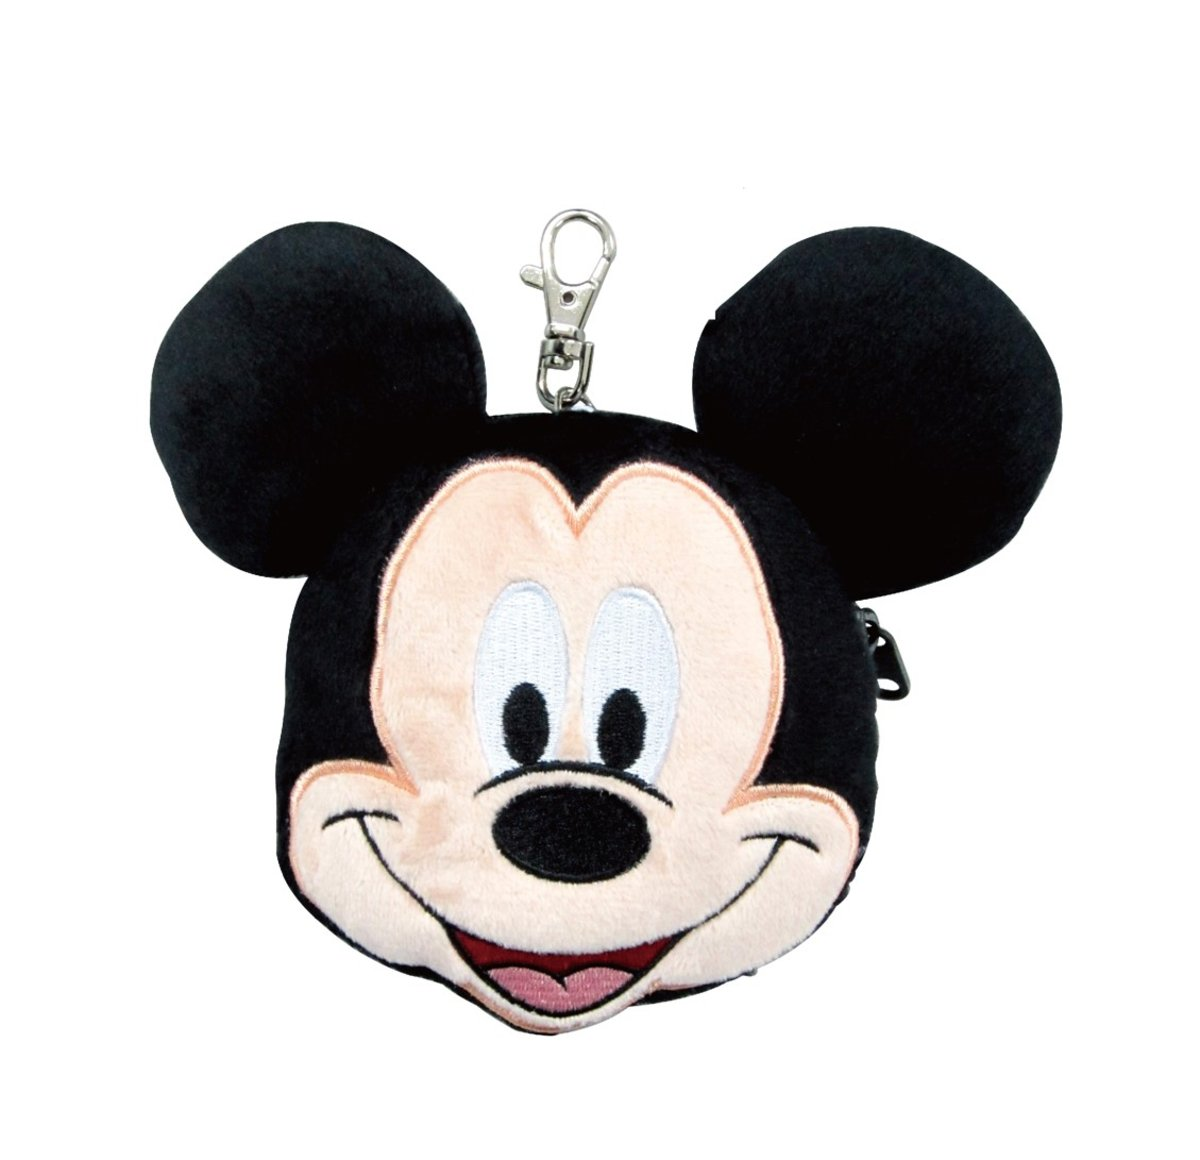 DISNEY-Pouch With Card Holder(Mickey) (Licensed by Disney)